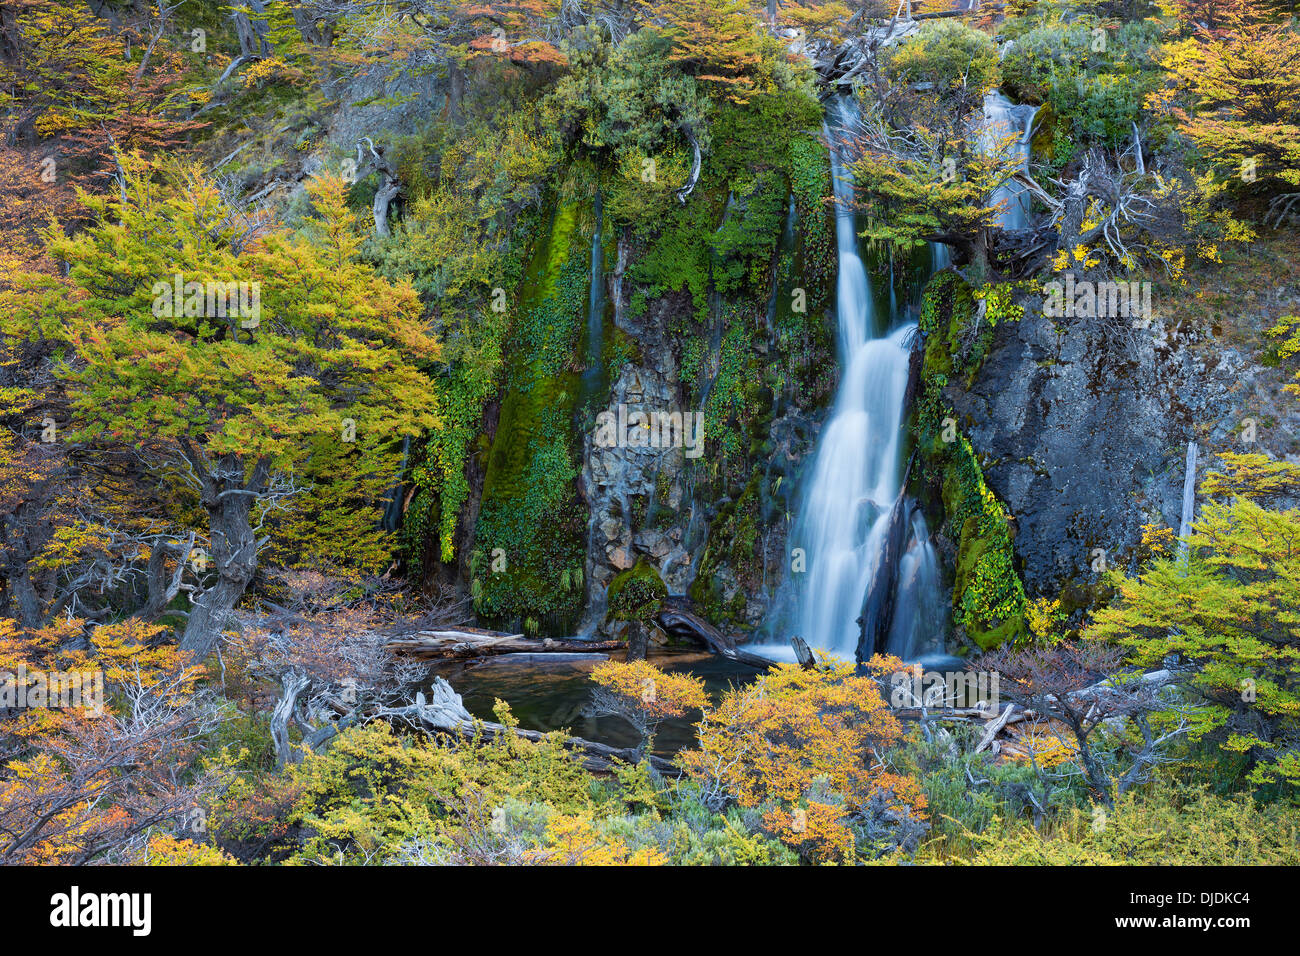 Scenic waterfall.Patagonia.Argentina - Stock Image